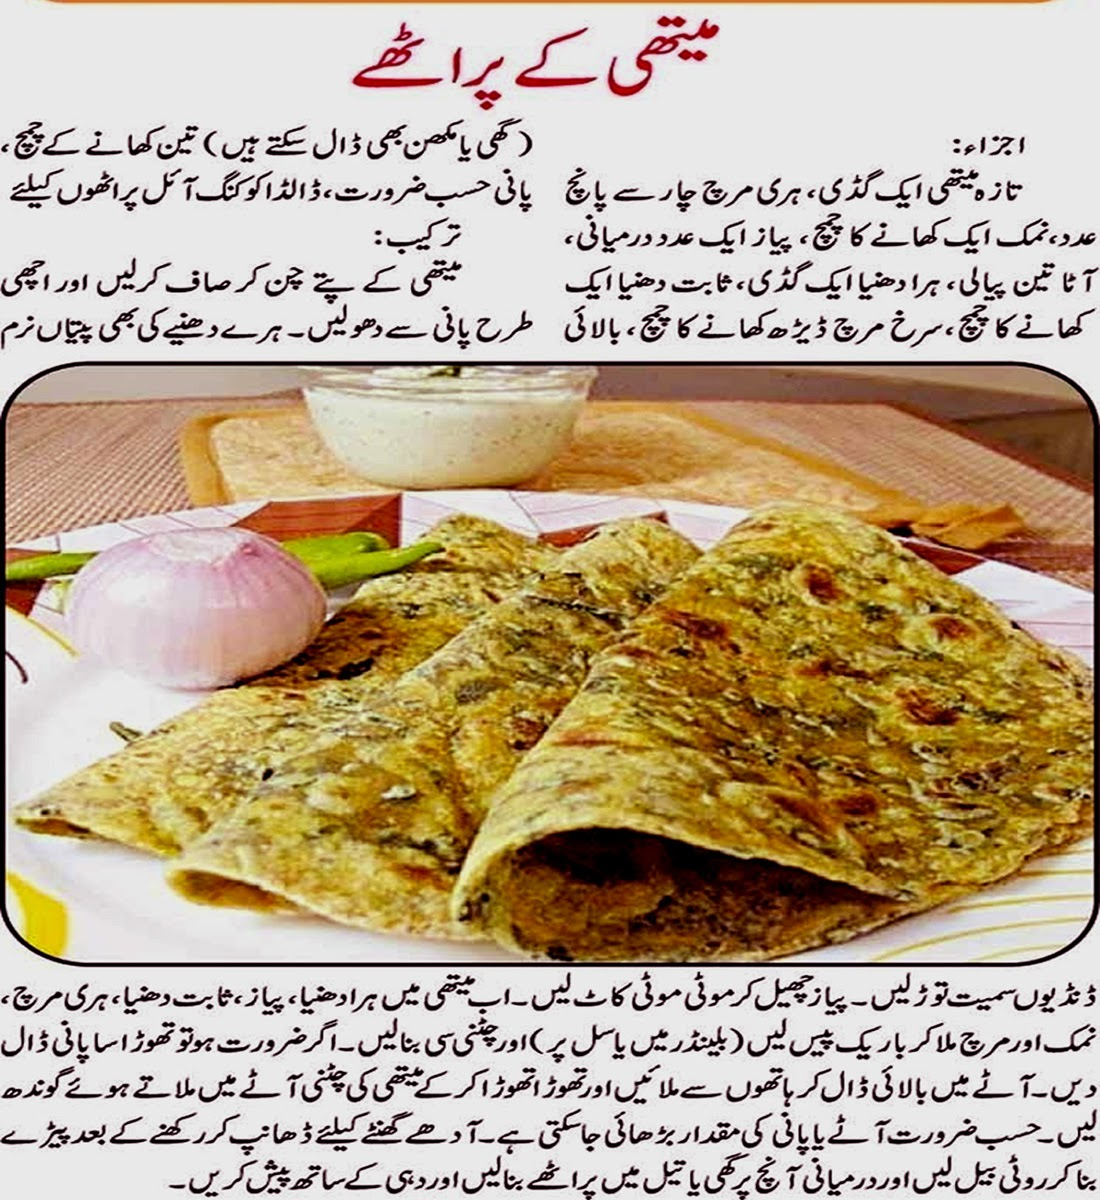 Urdu recepies 4u food recipe of methi ka pratha in urdu forumfinder Choice Image